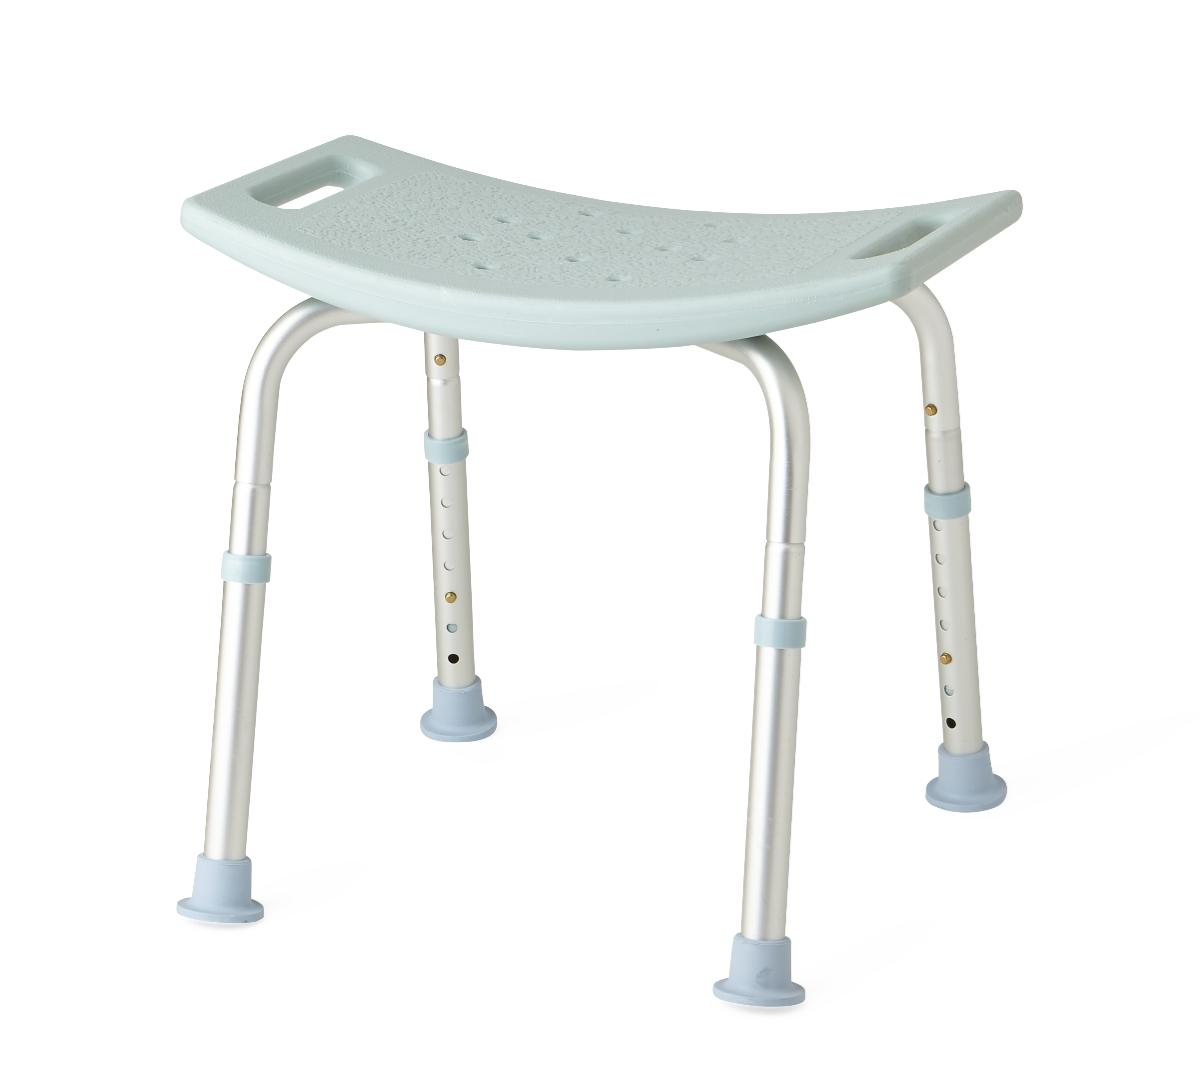 Durable Medical Equipment (DME) :: Bath Safety :: Benches ...